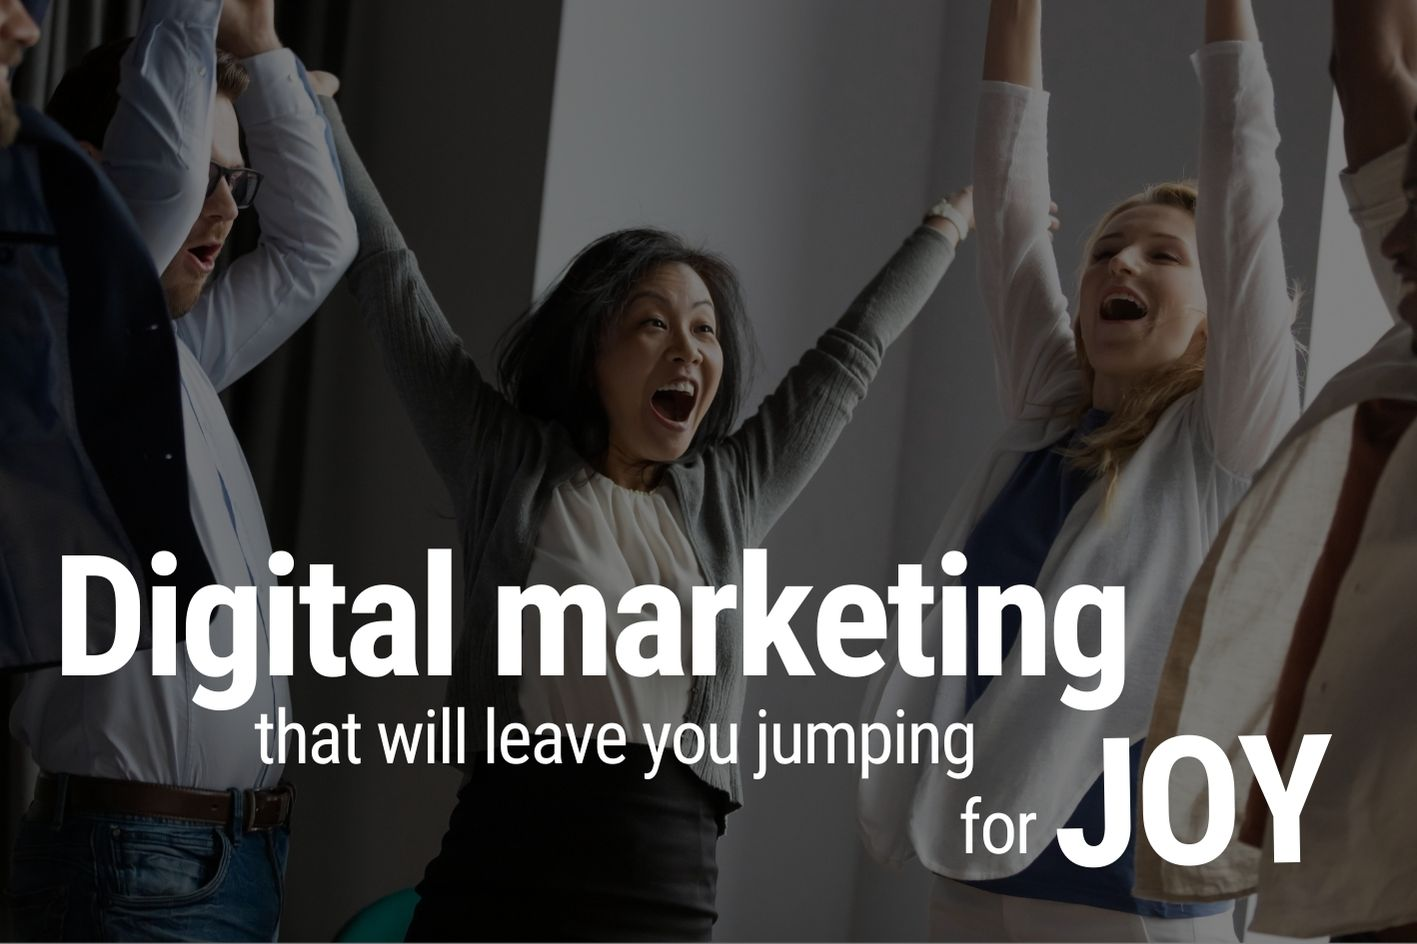 Digital marketing that will leave you jumping for joy.